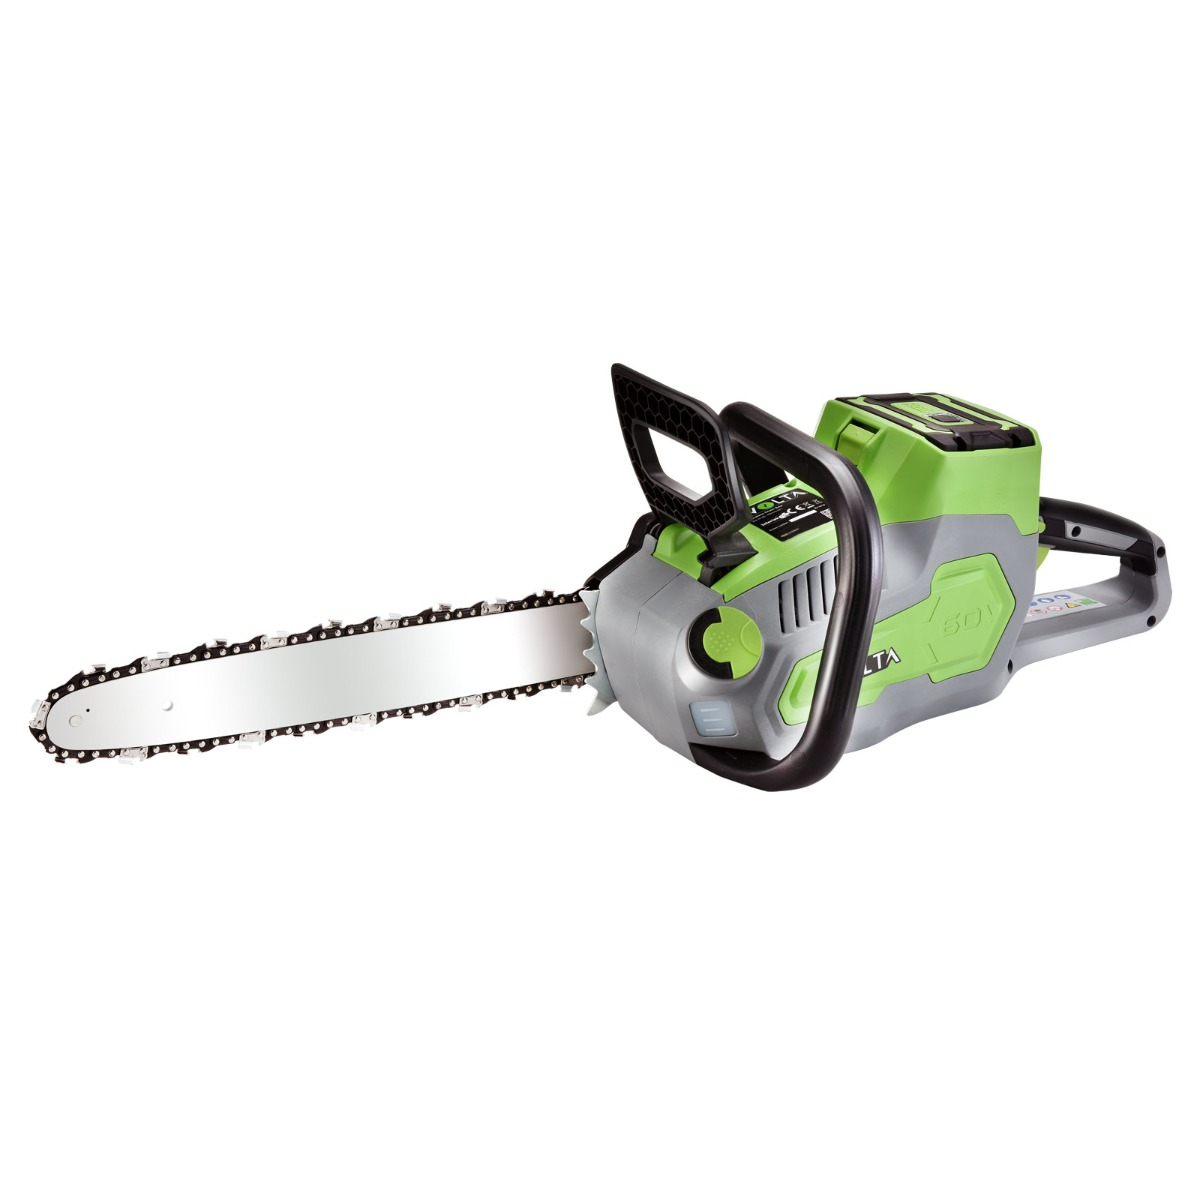 Neovolta 60v Chainsaw Bare Unit Lithium Ion Batteries Rechargeable